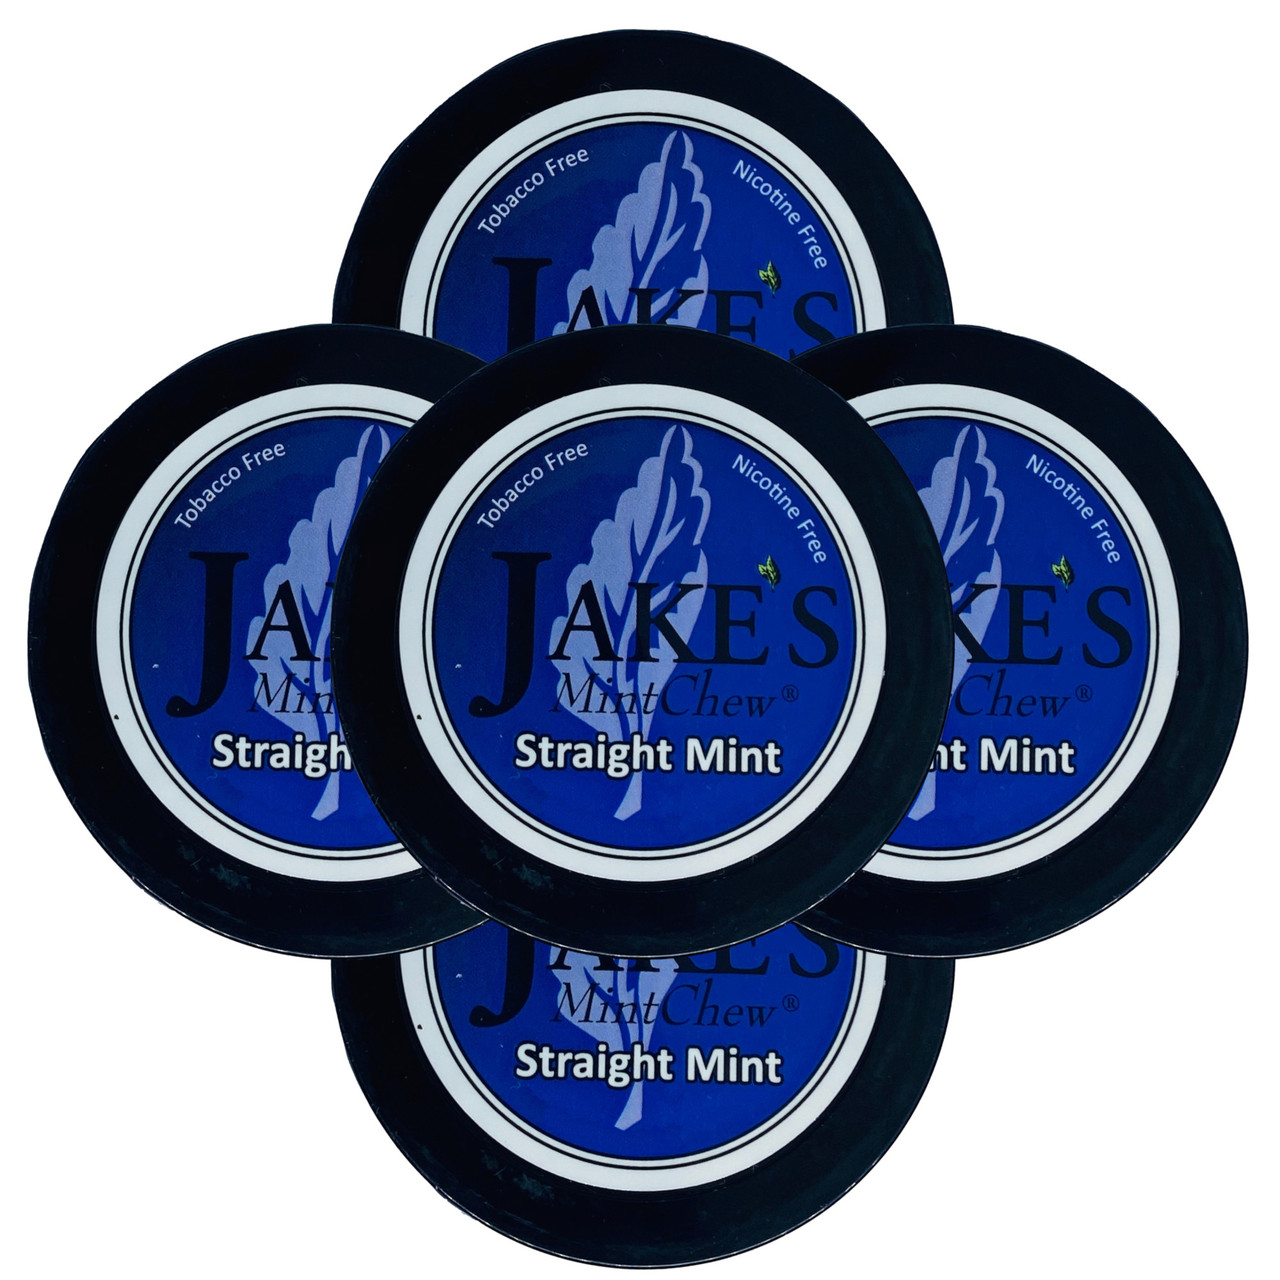 Jake's Mint Chew Straight Mint 5 Cans